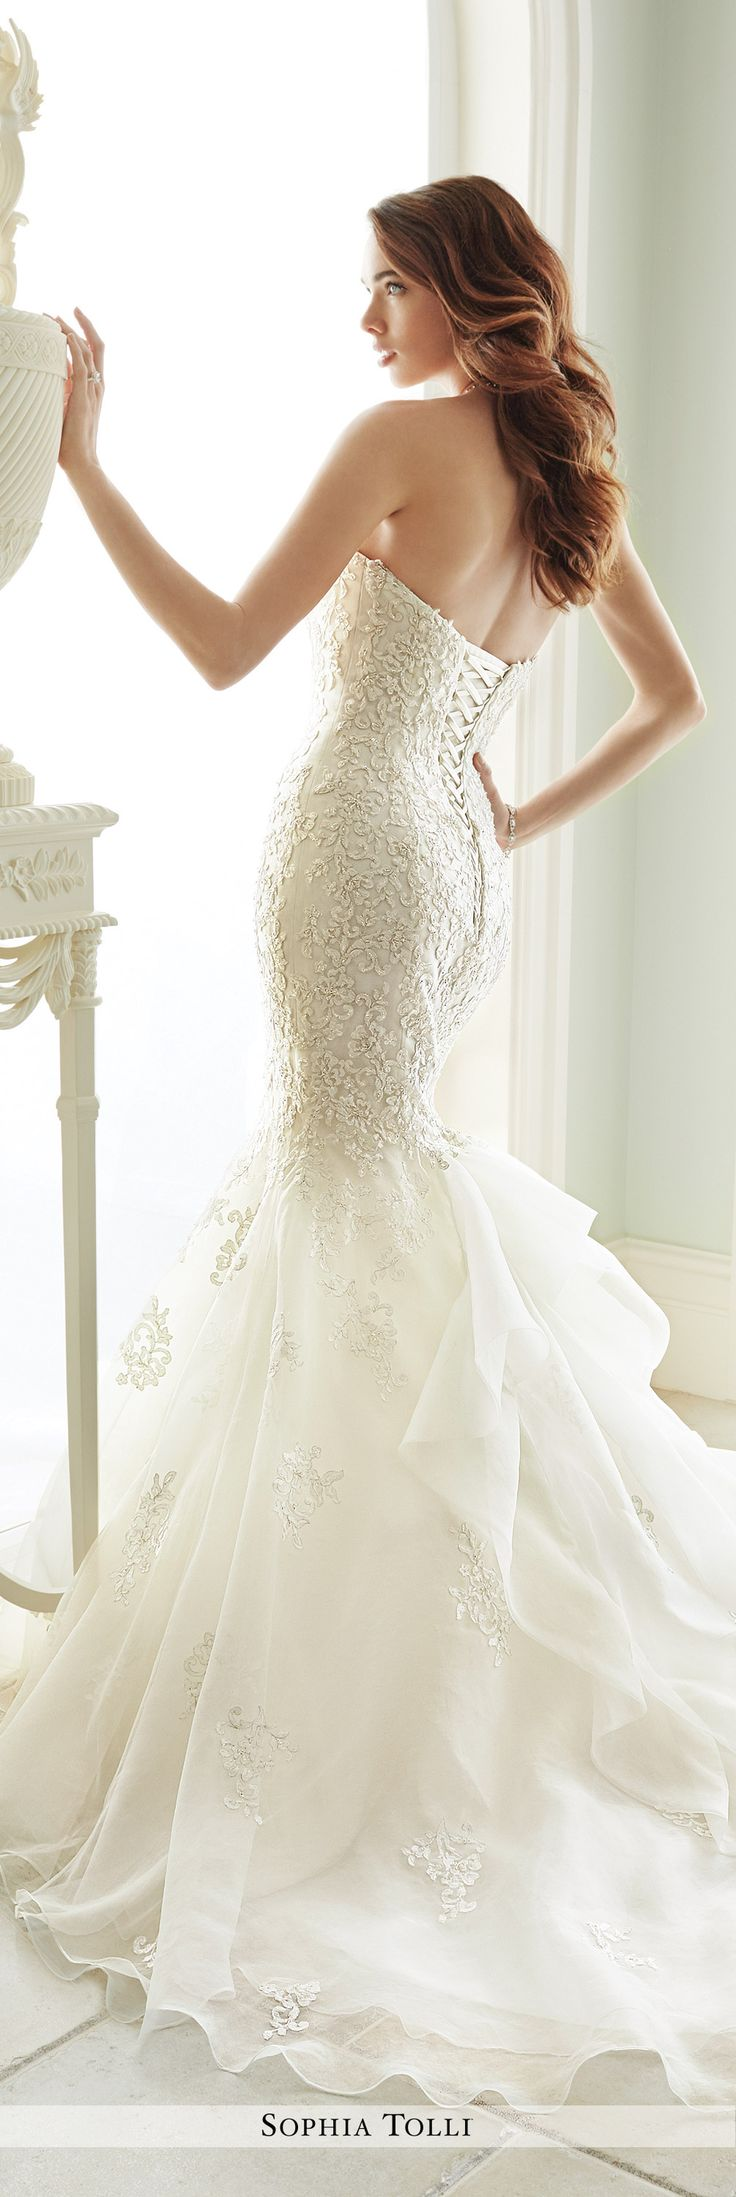 Sophia Tolli Fall 2016 Wedding Gown Collection - Style No. Y21664 Vittoria - strapless lace trumpet wedding dress